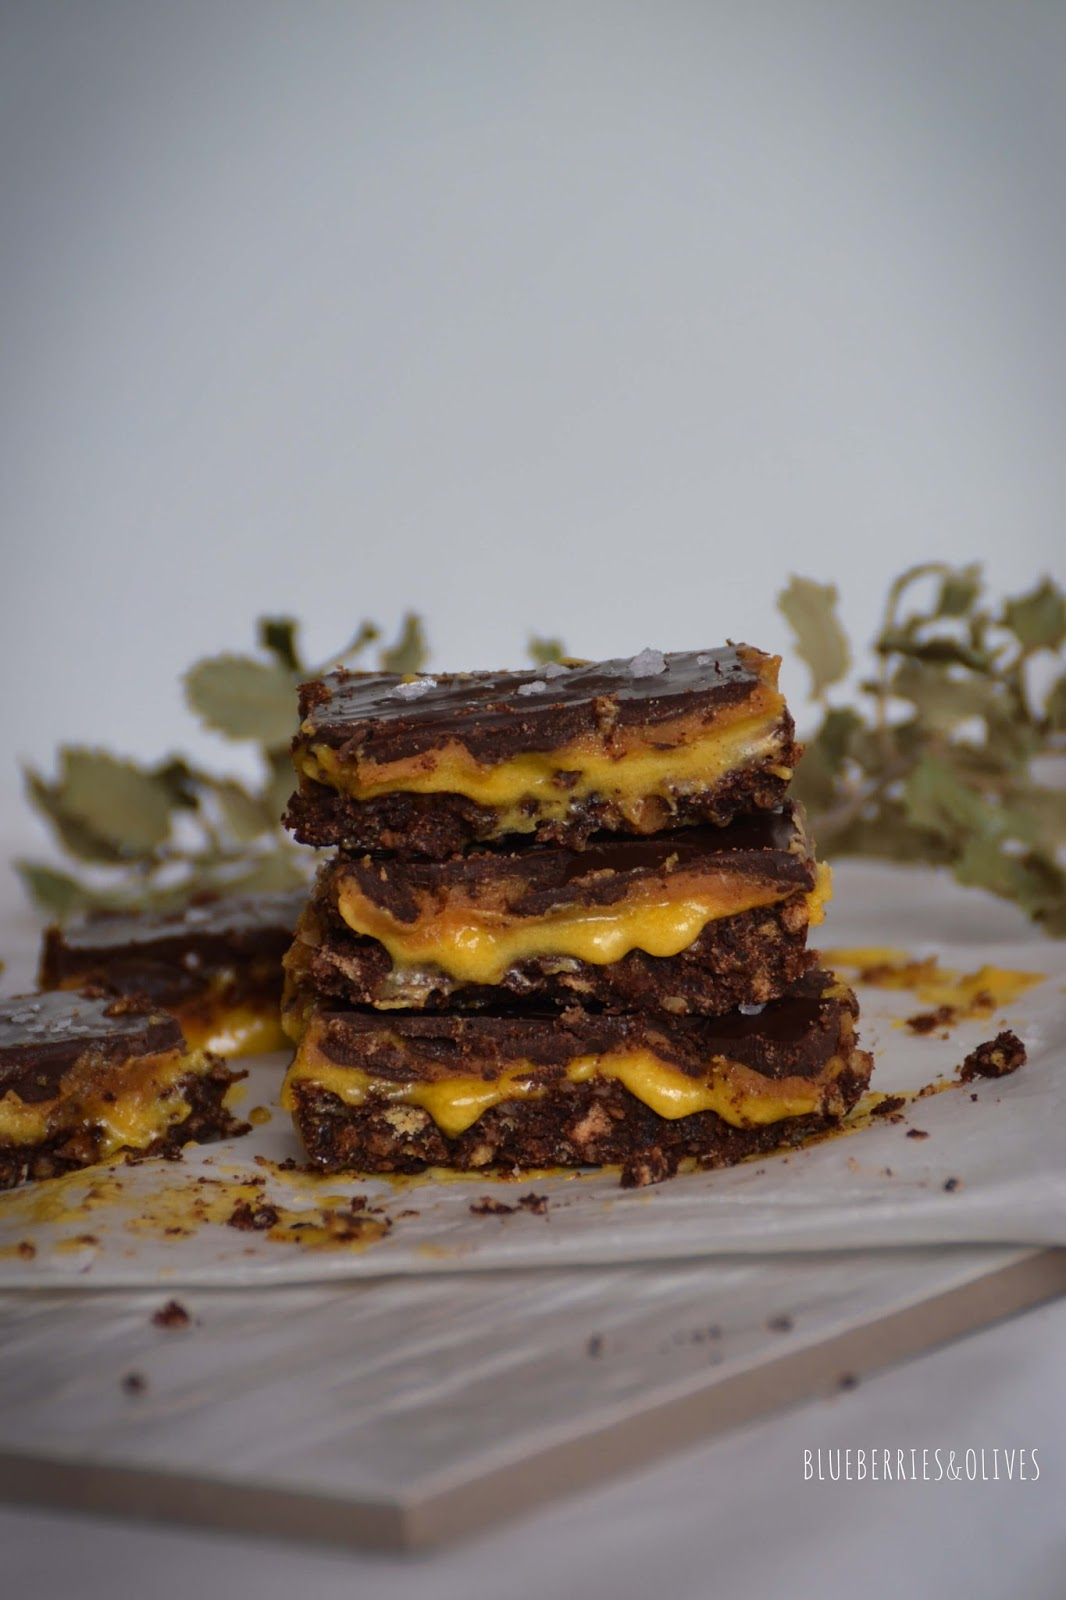 SWEET AND SALTY CHOCOLATE SQUARES